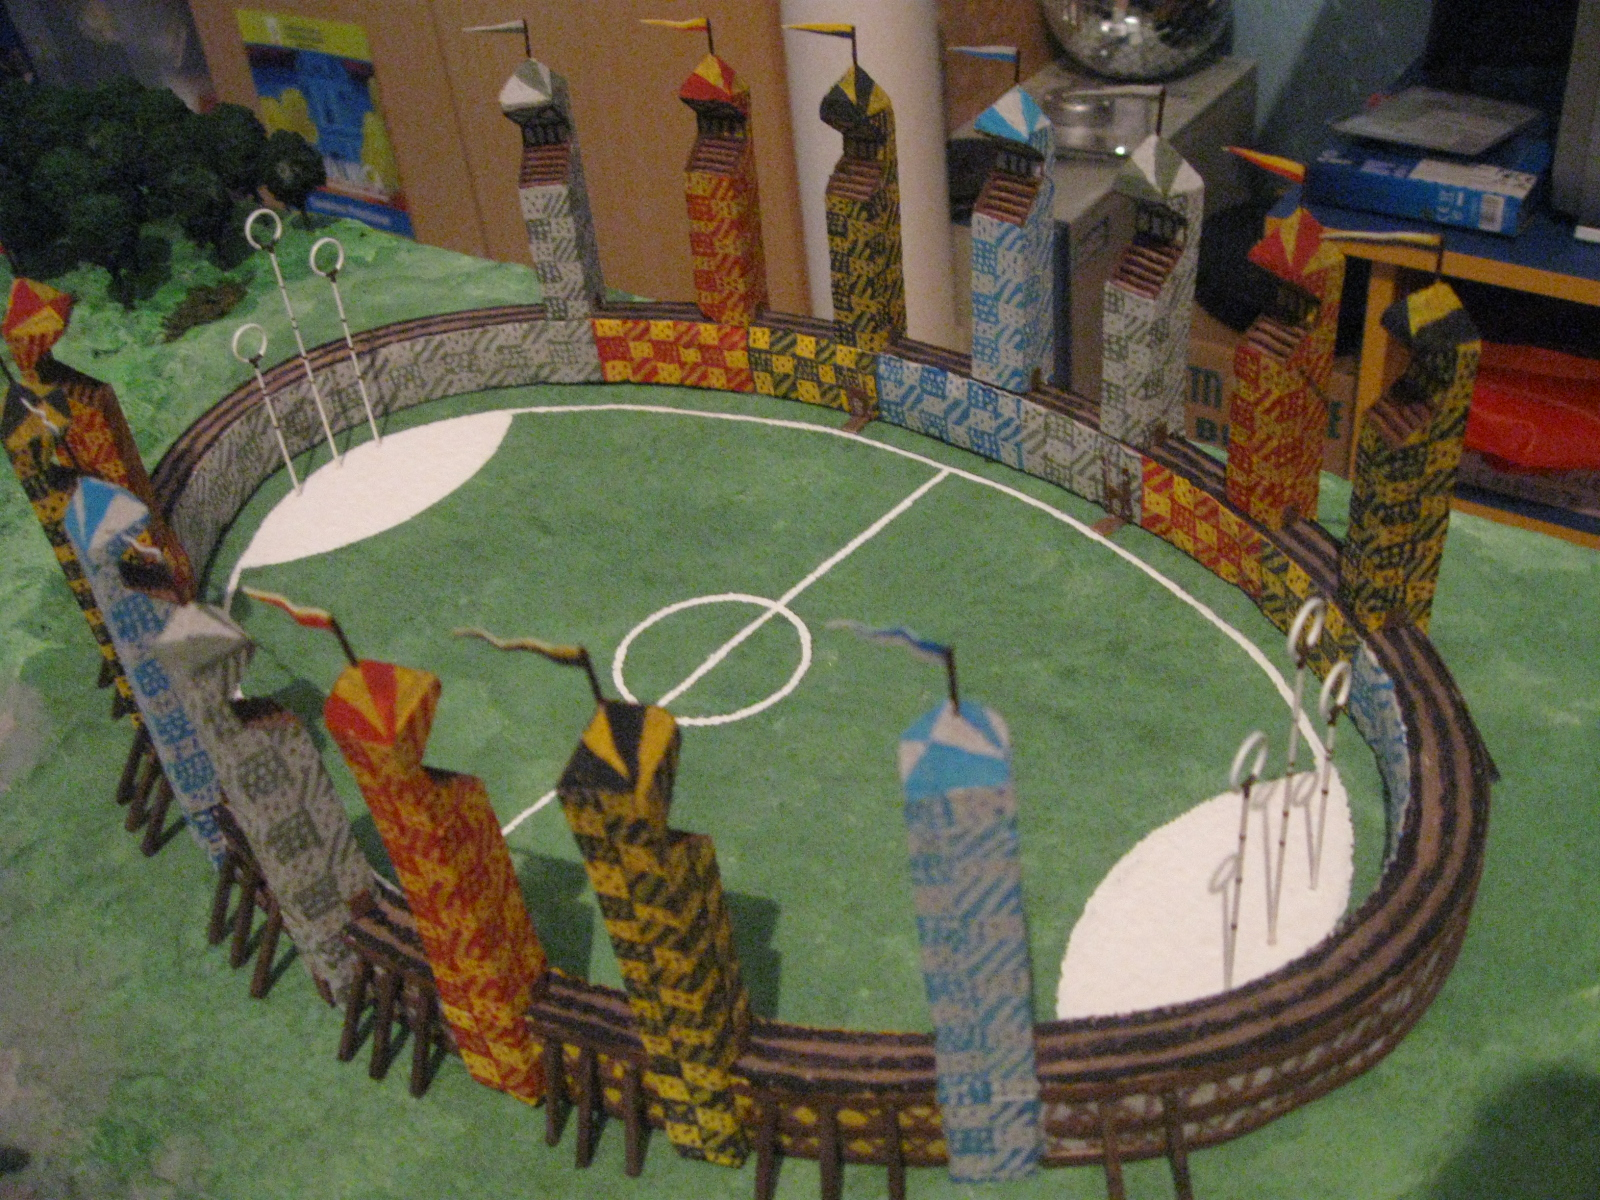 House Design Games Like Sims My Quidditch Pitch Model By Sandrinop On Deviantart